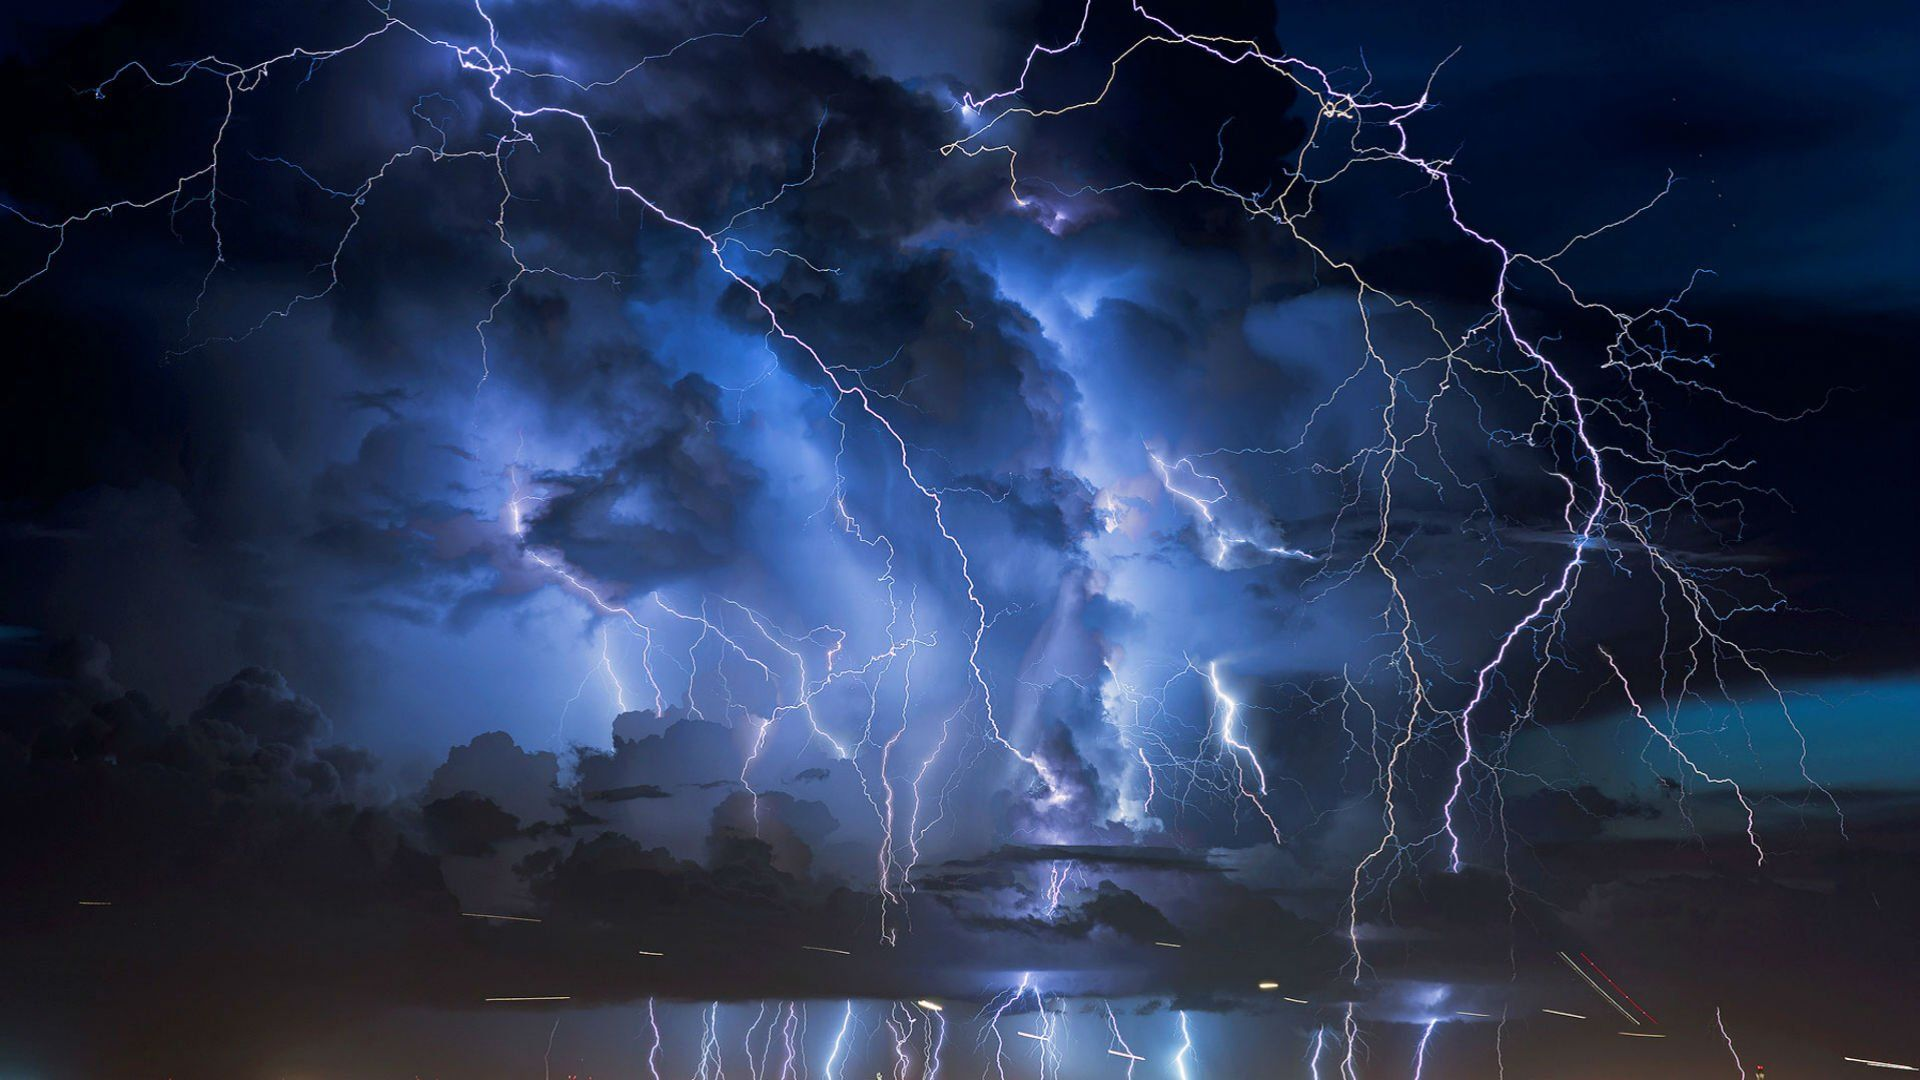 STORM weather rain sky clouds nature lightning city cities